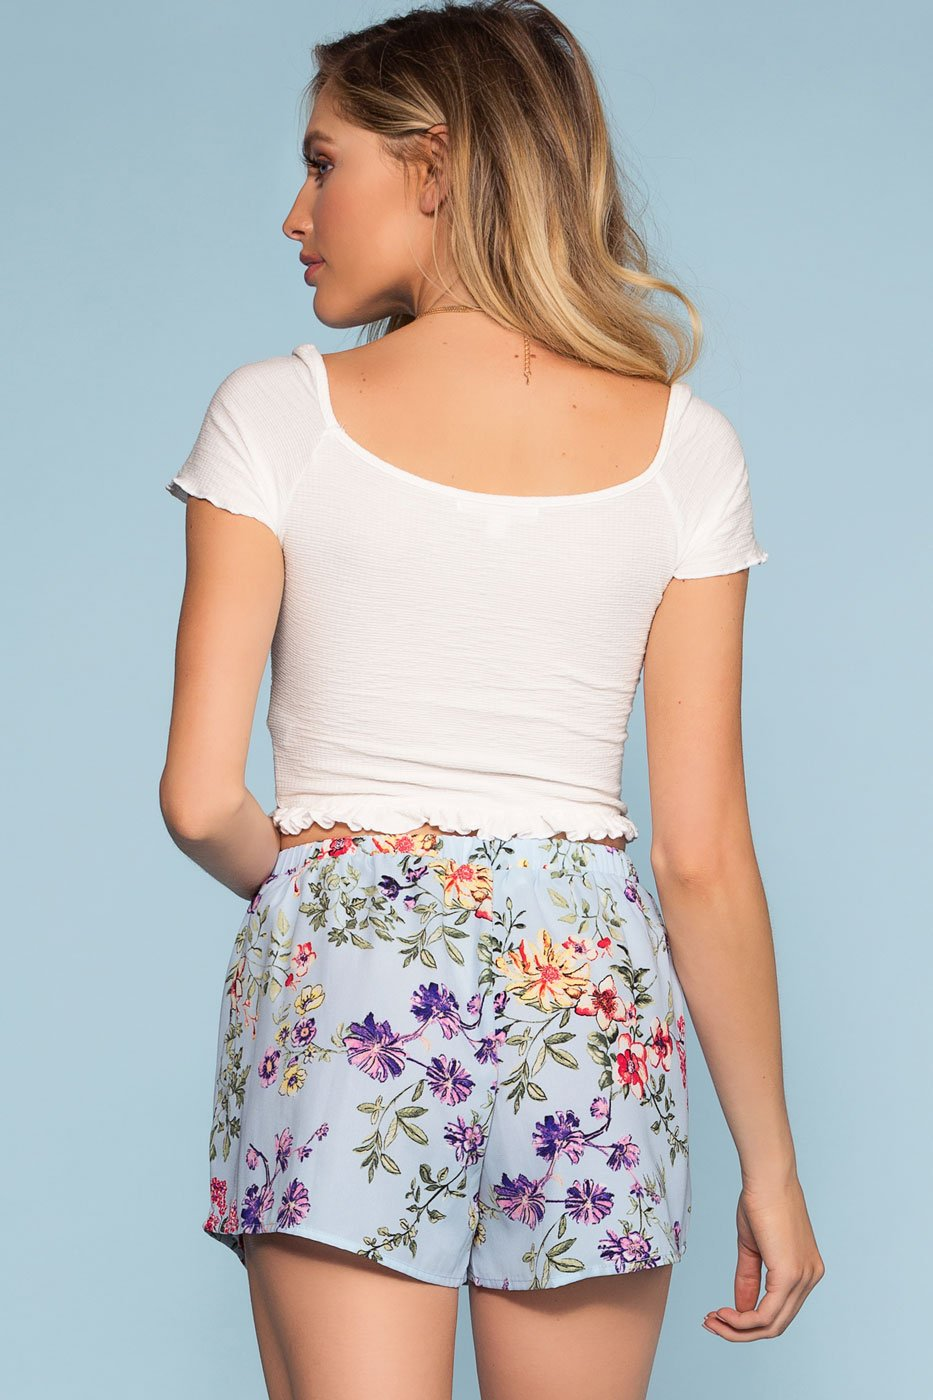 Shorts - Sunday Blossom Floral Shorts - Blue